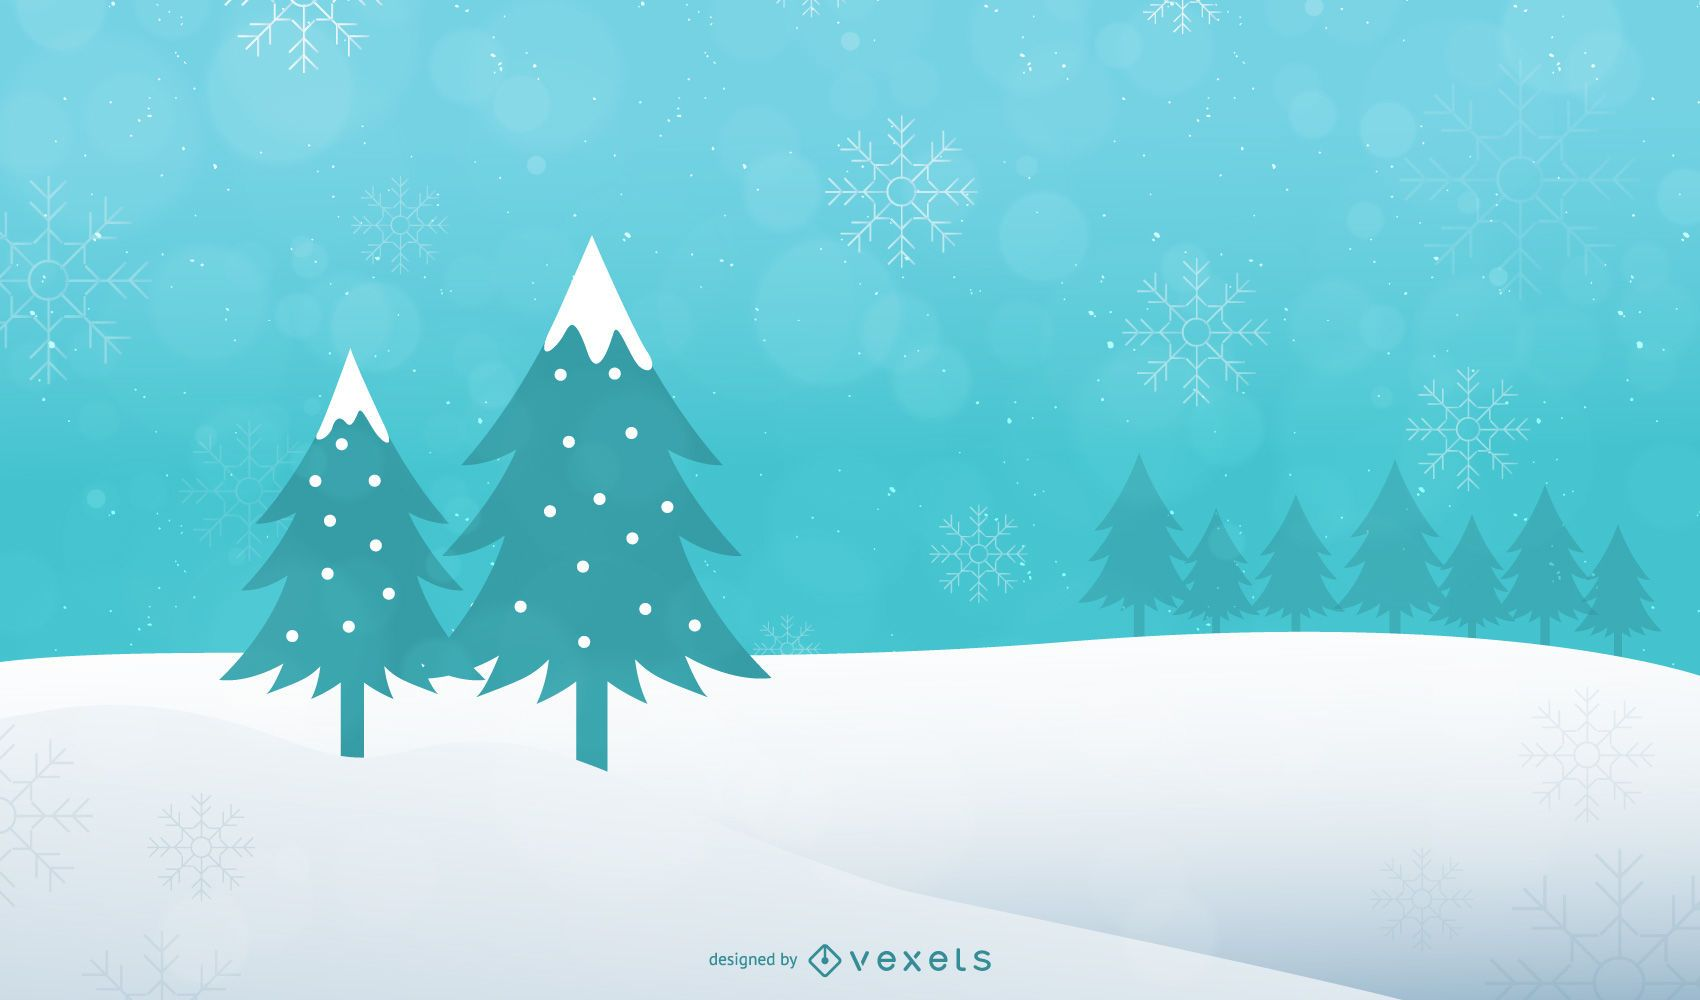 Abstract Xmas Tree on Snowy Landscape Background